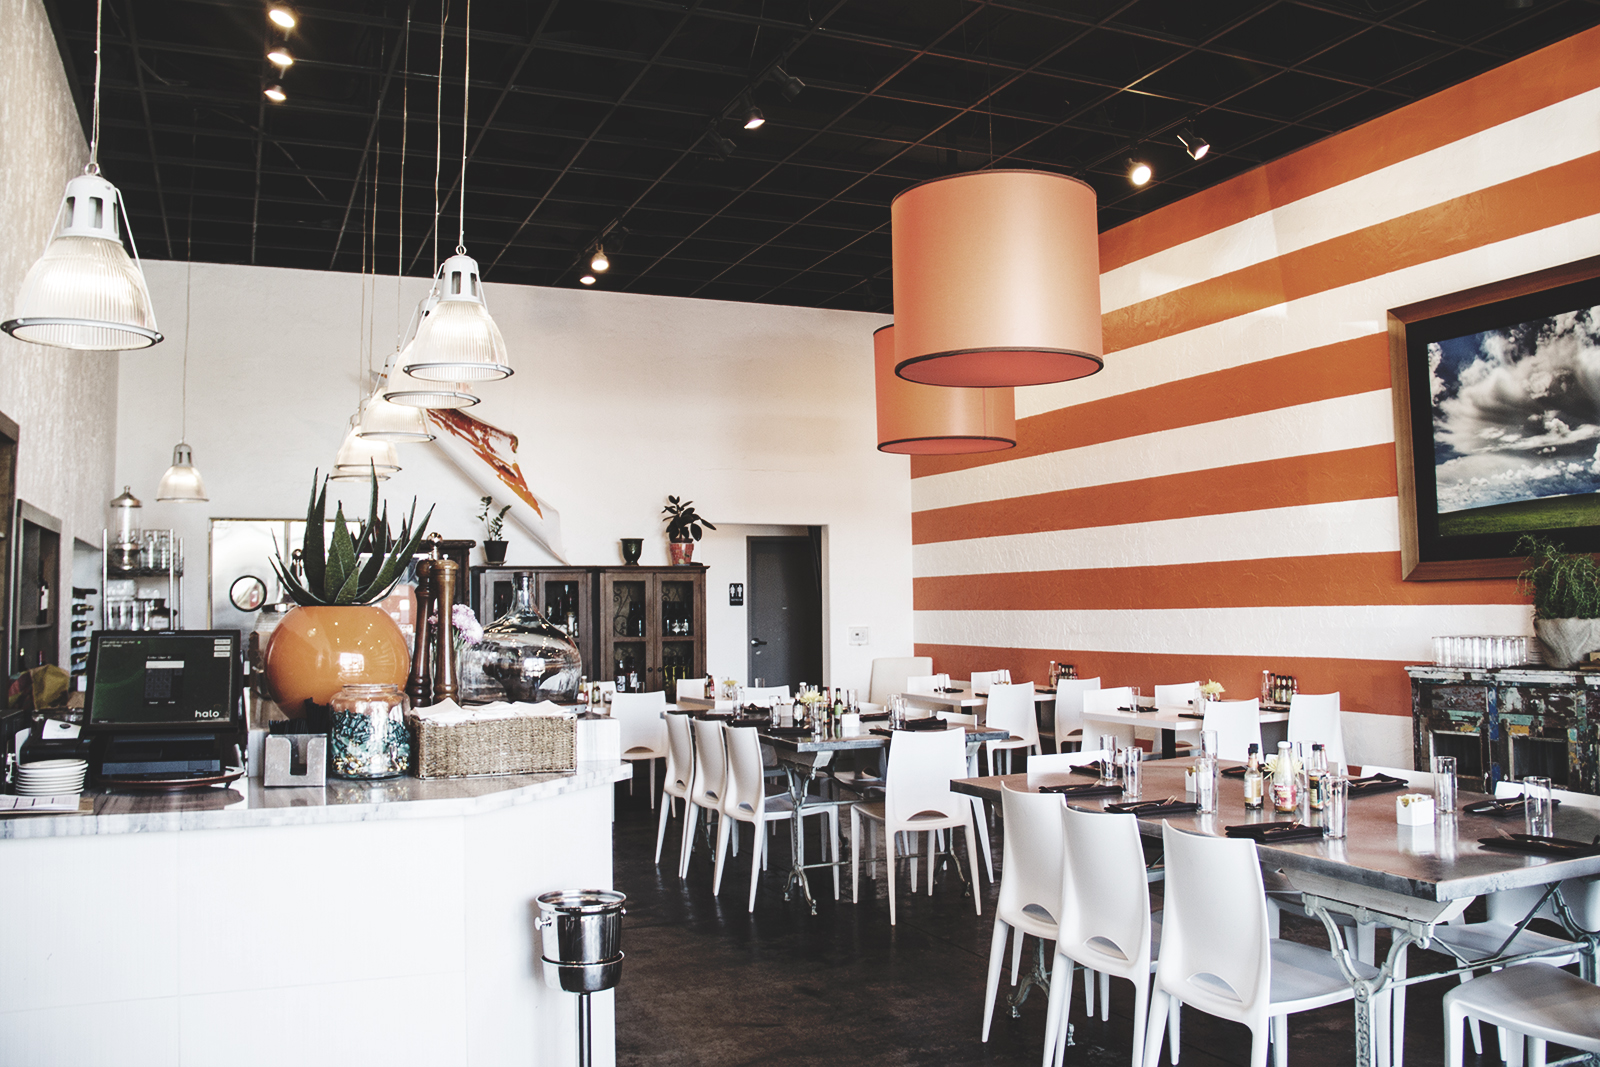 The second dining room at DW Bistro boasts a bold orange motif and an open, airy feel.